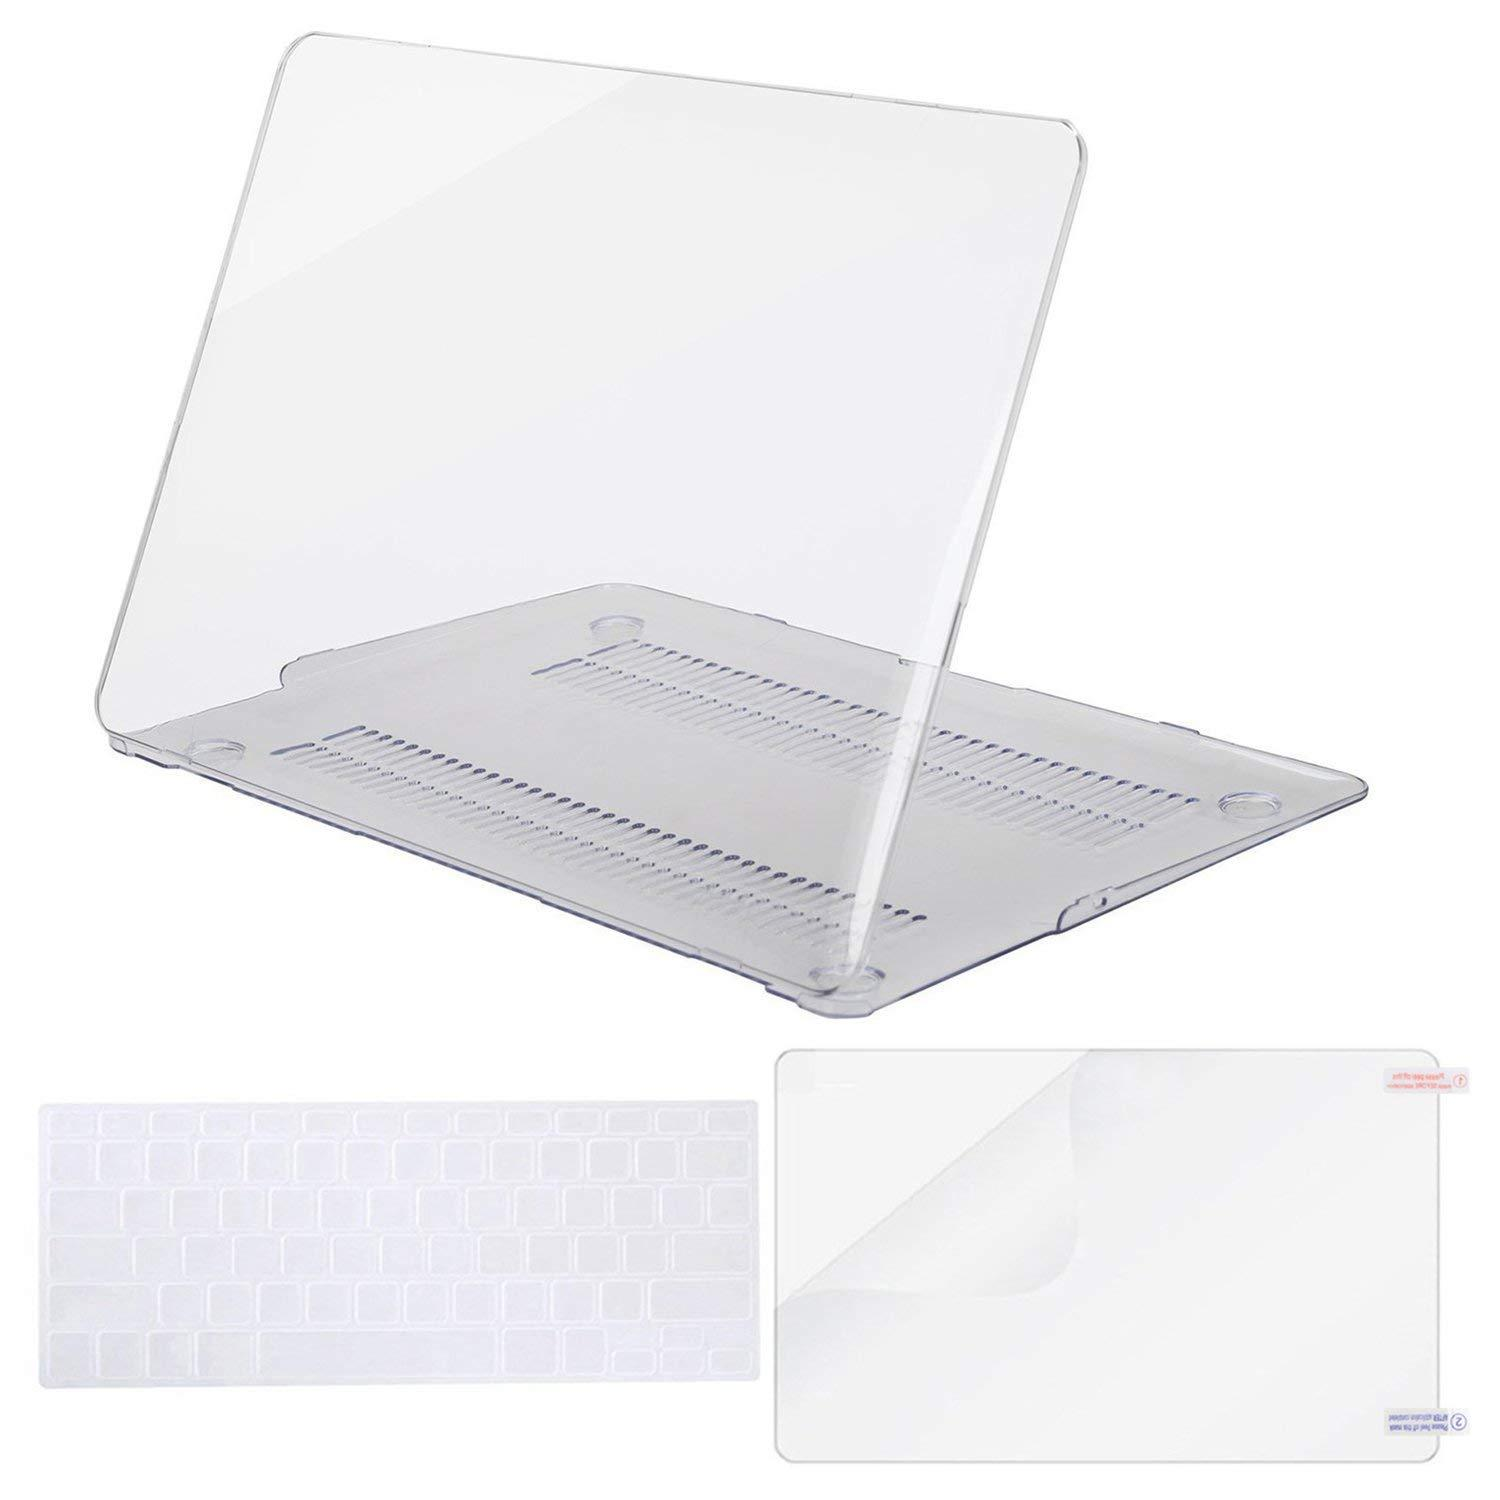 MacBook Plastic Hard Shell Case & Keyboard Cover & Screen Protector Compatible MacBook Air 11 Inch (Models: A1370 & A1465) Release 2015 / 2014 / 2013 / 2012 / 2011 / 2010